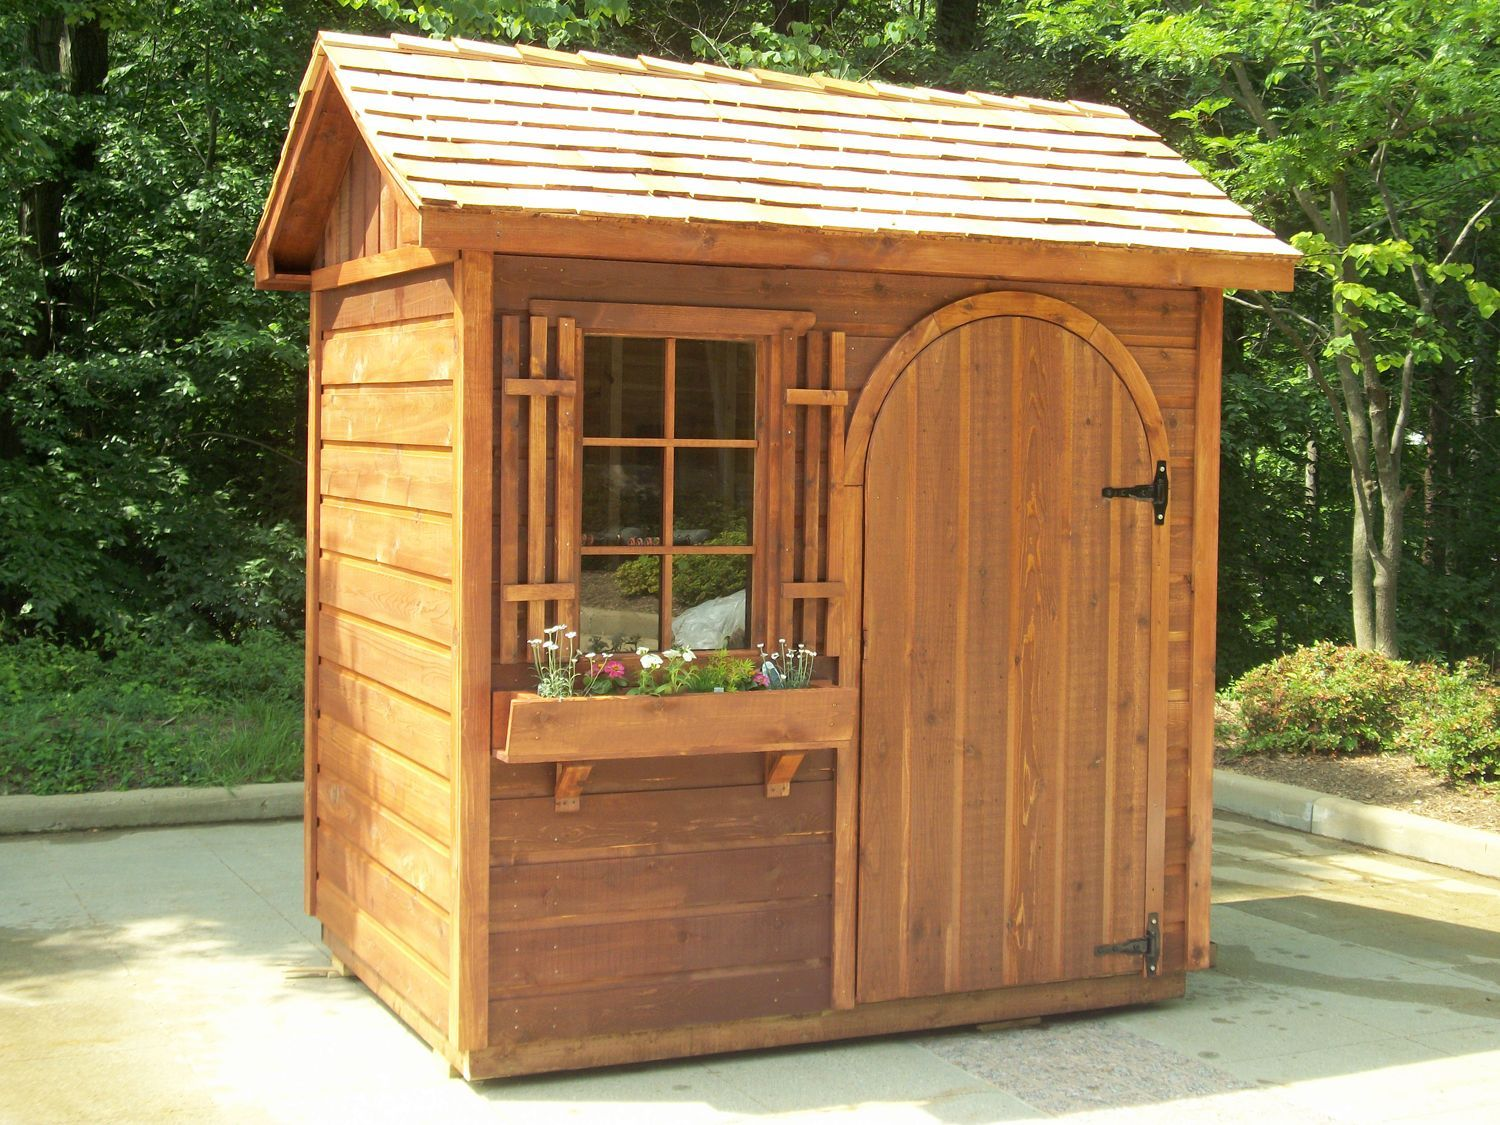 Small Garden Shed With Catchy Design For Garden | Outdoor ...